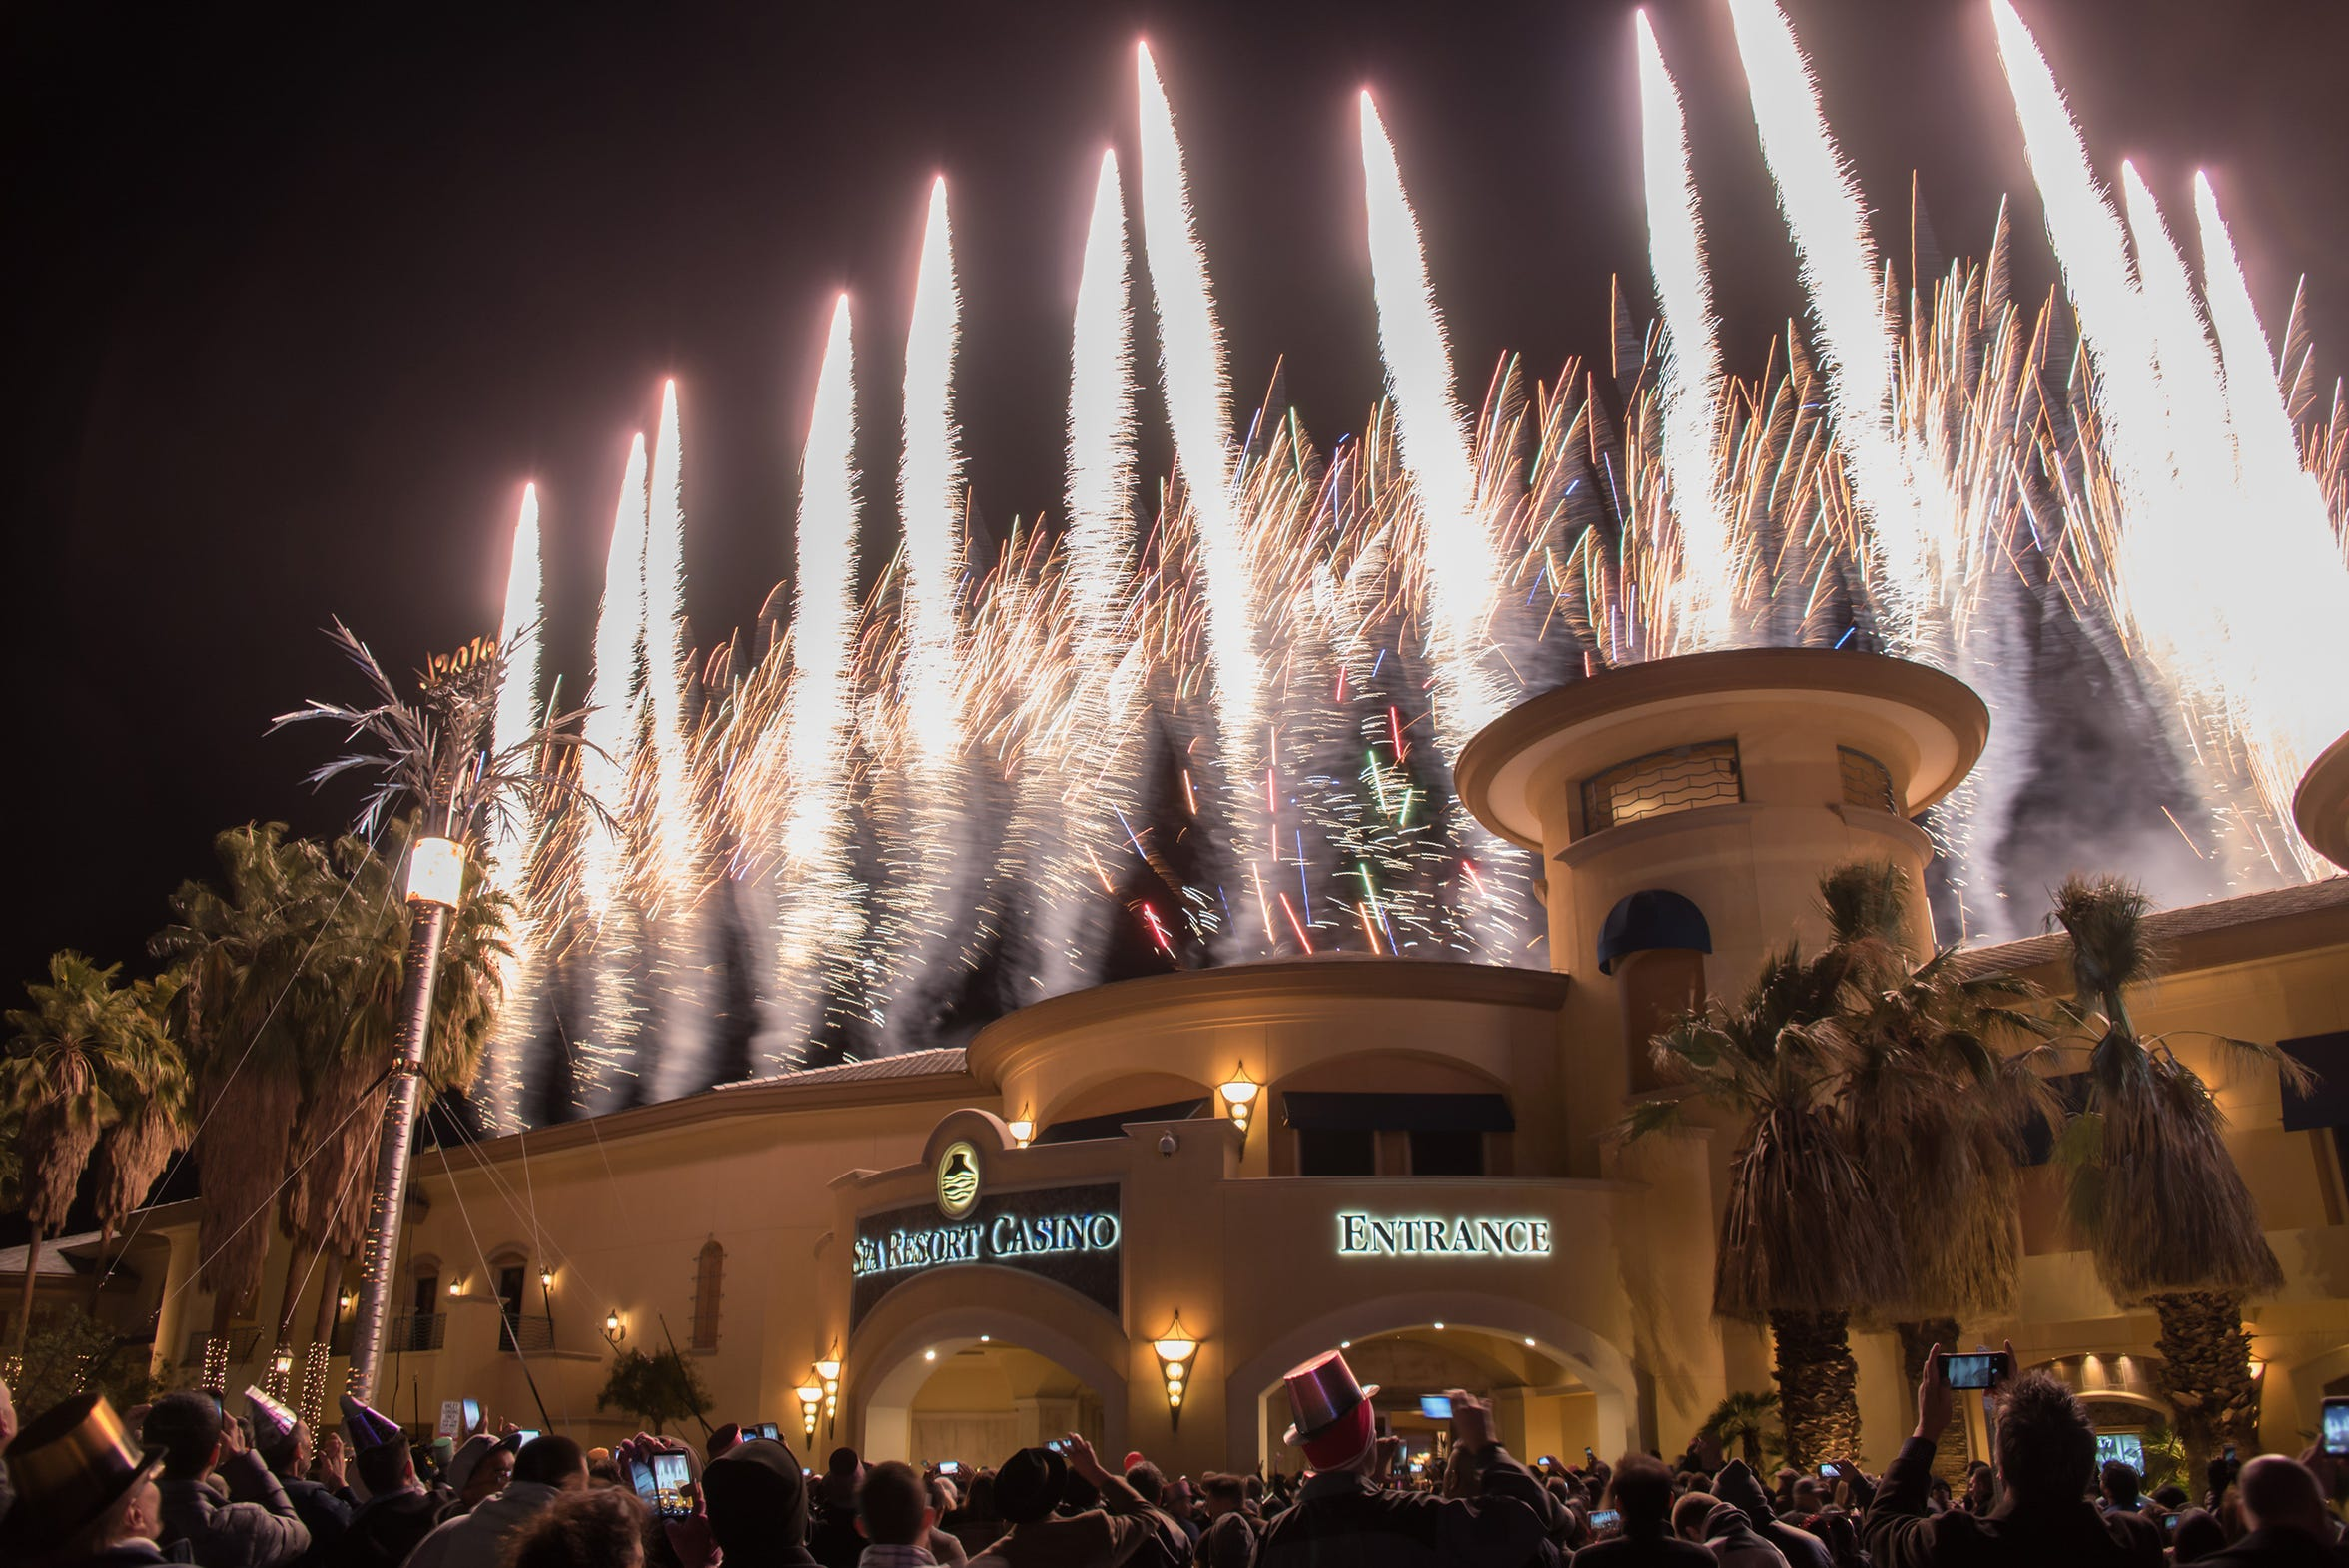 A New Year's Eve celebration at the Agua Caliente Casino Palm Springs in Palm Springs, Calif.